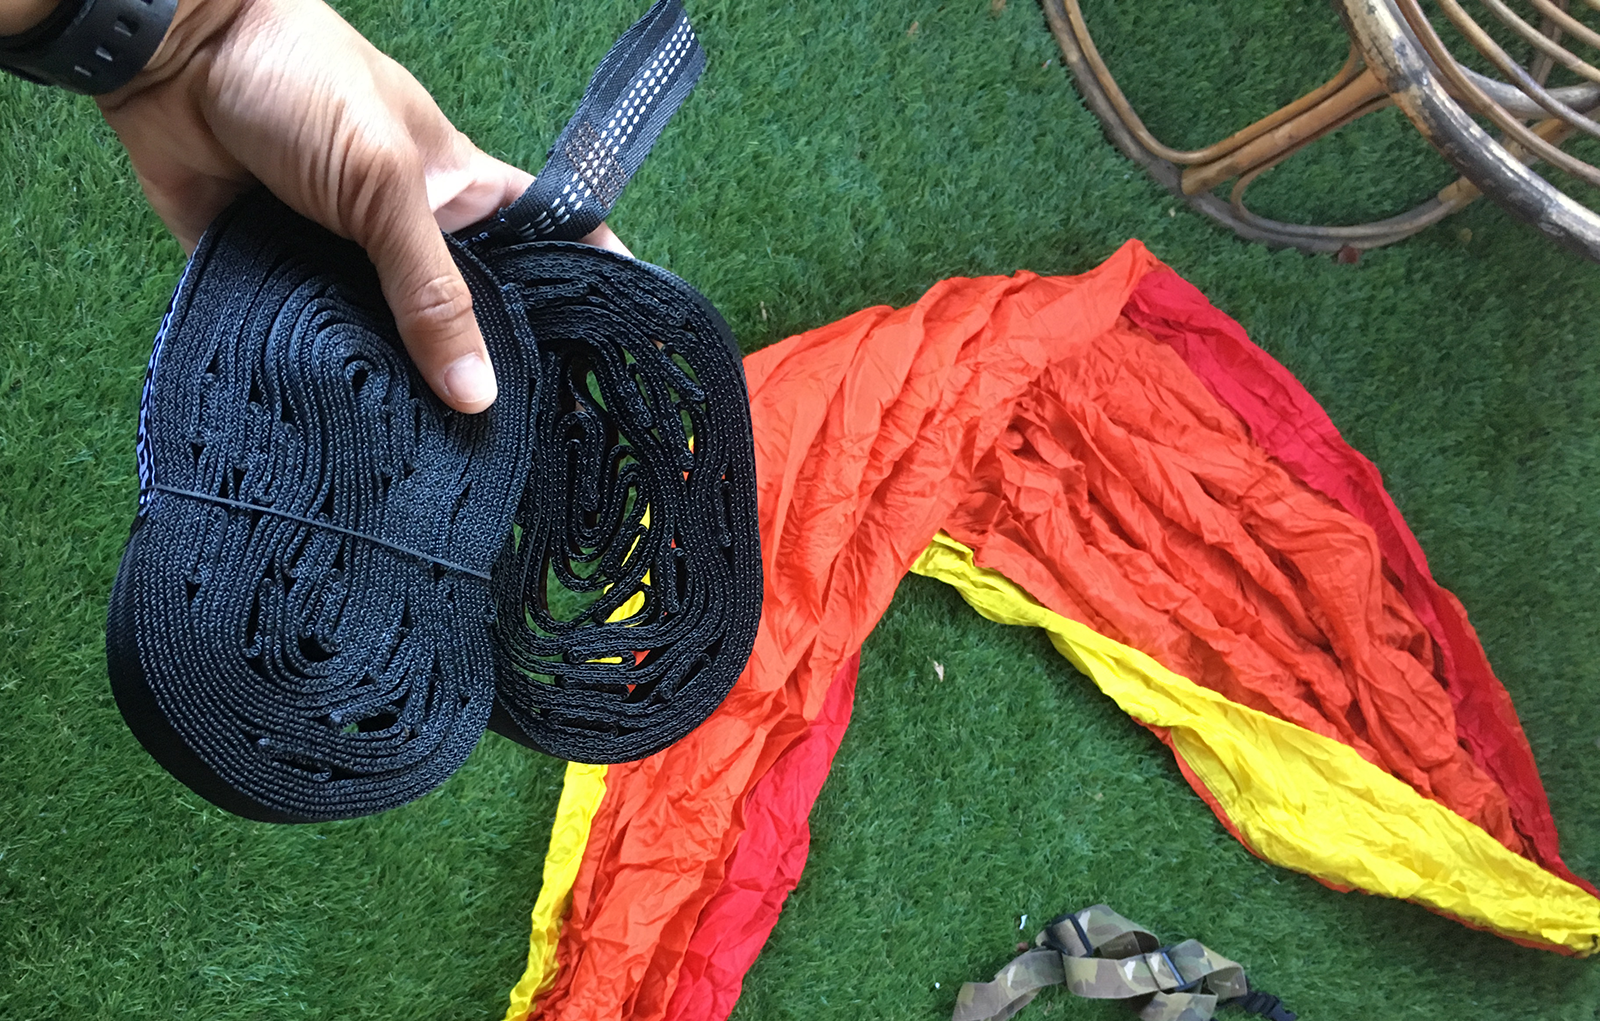 Preview of the Eno Atlas XL Hammock strap, Eno Sunshine doublenest Sunshine in background.